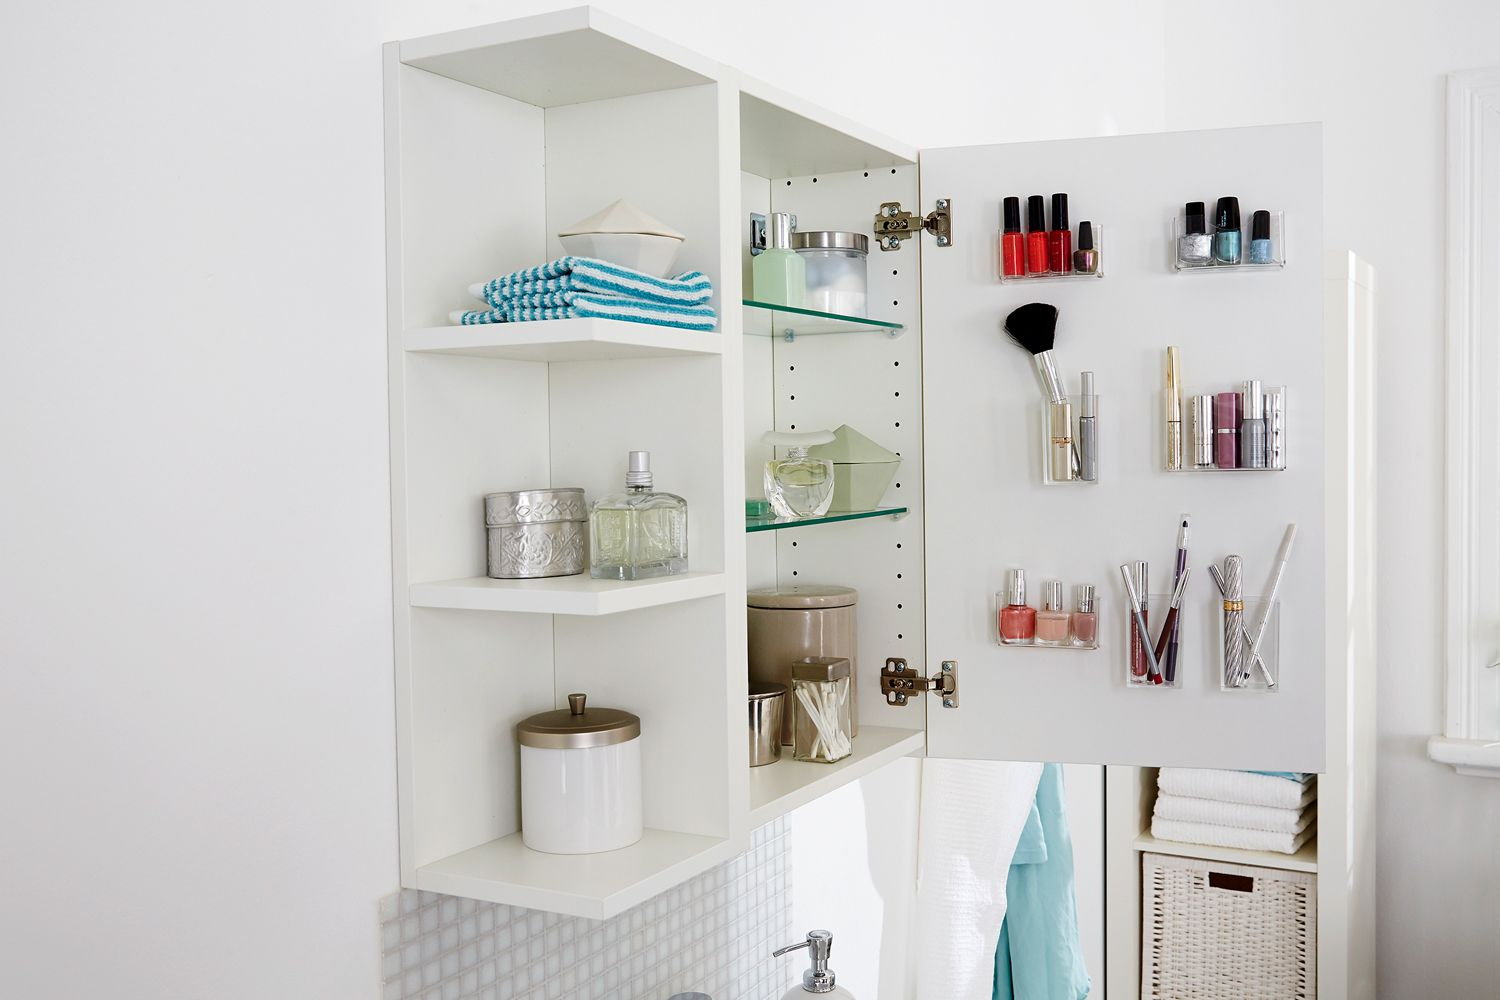 Mehr Stauraum Im Bad Schrank So Geht S Bathroom Medicine Cabinet Floating Shelves Diy Home Organisation